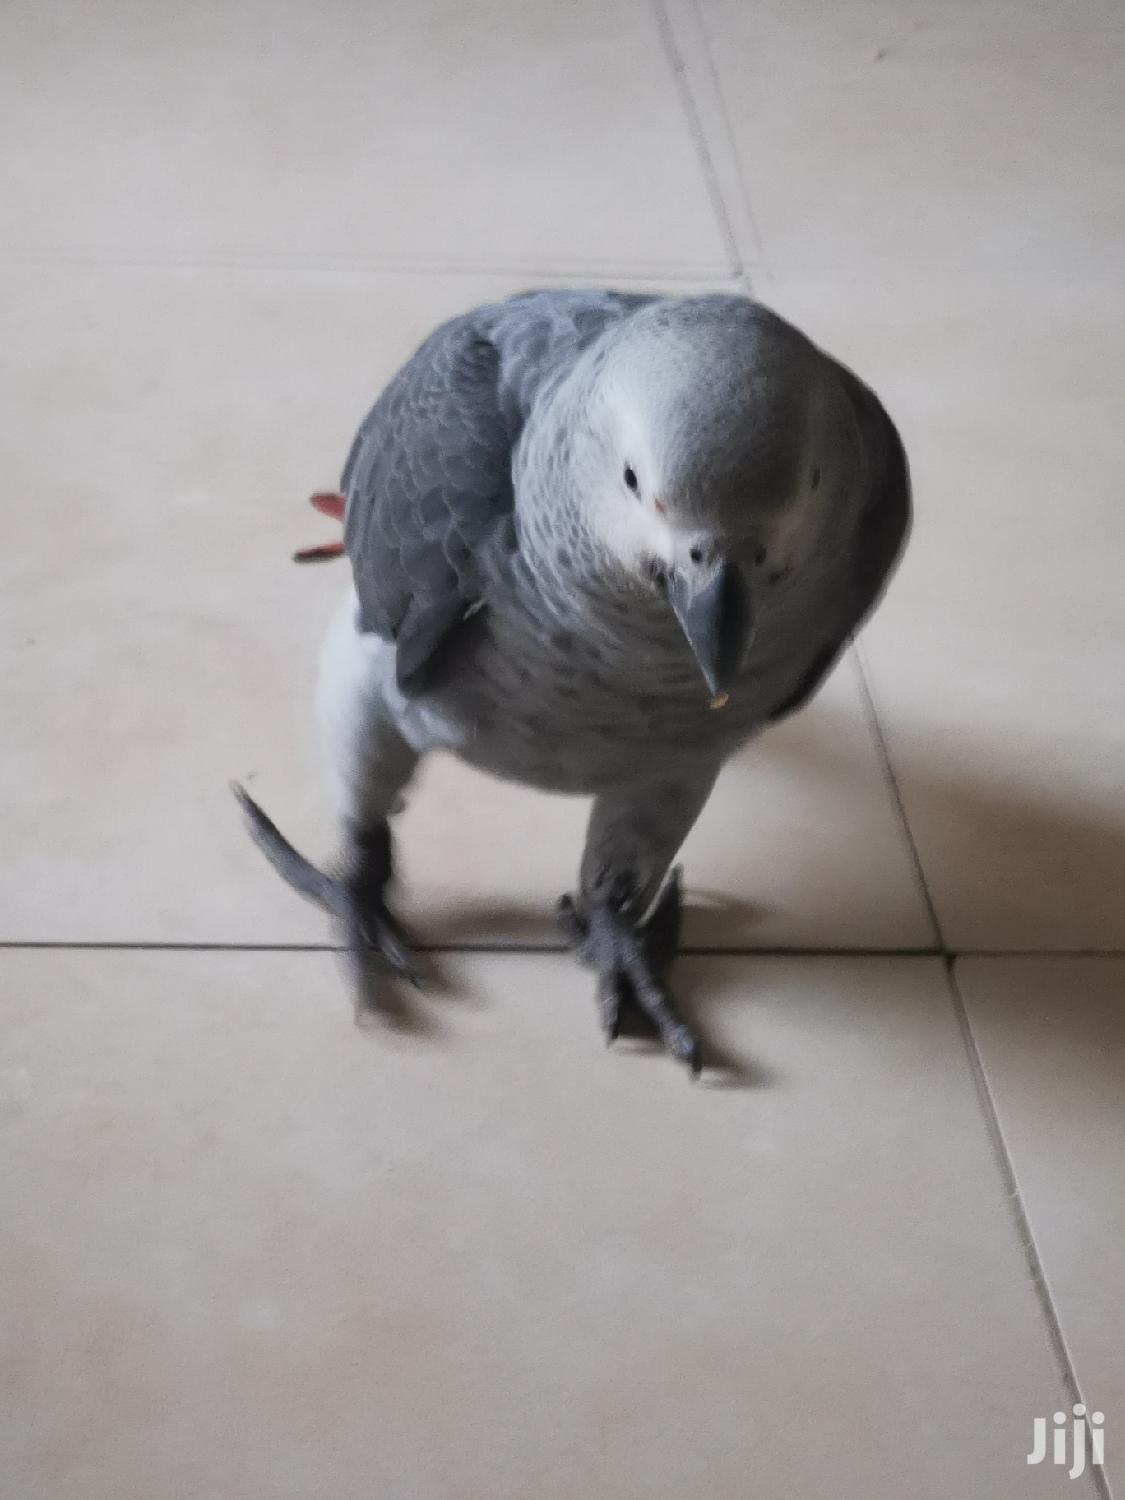 Archive: Greybirdparrot